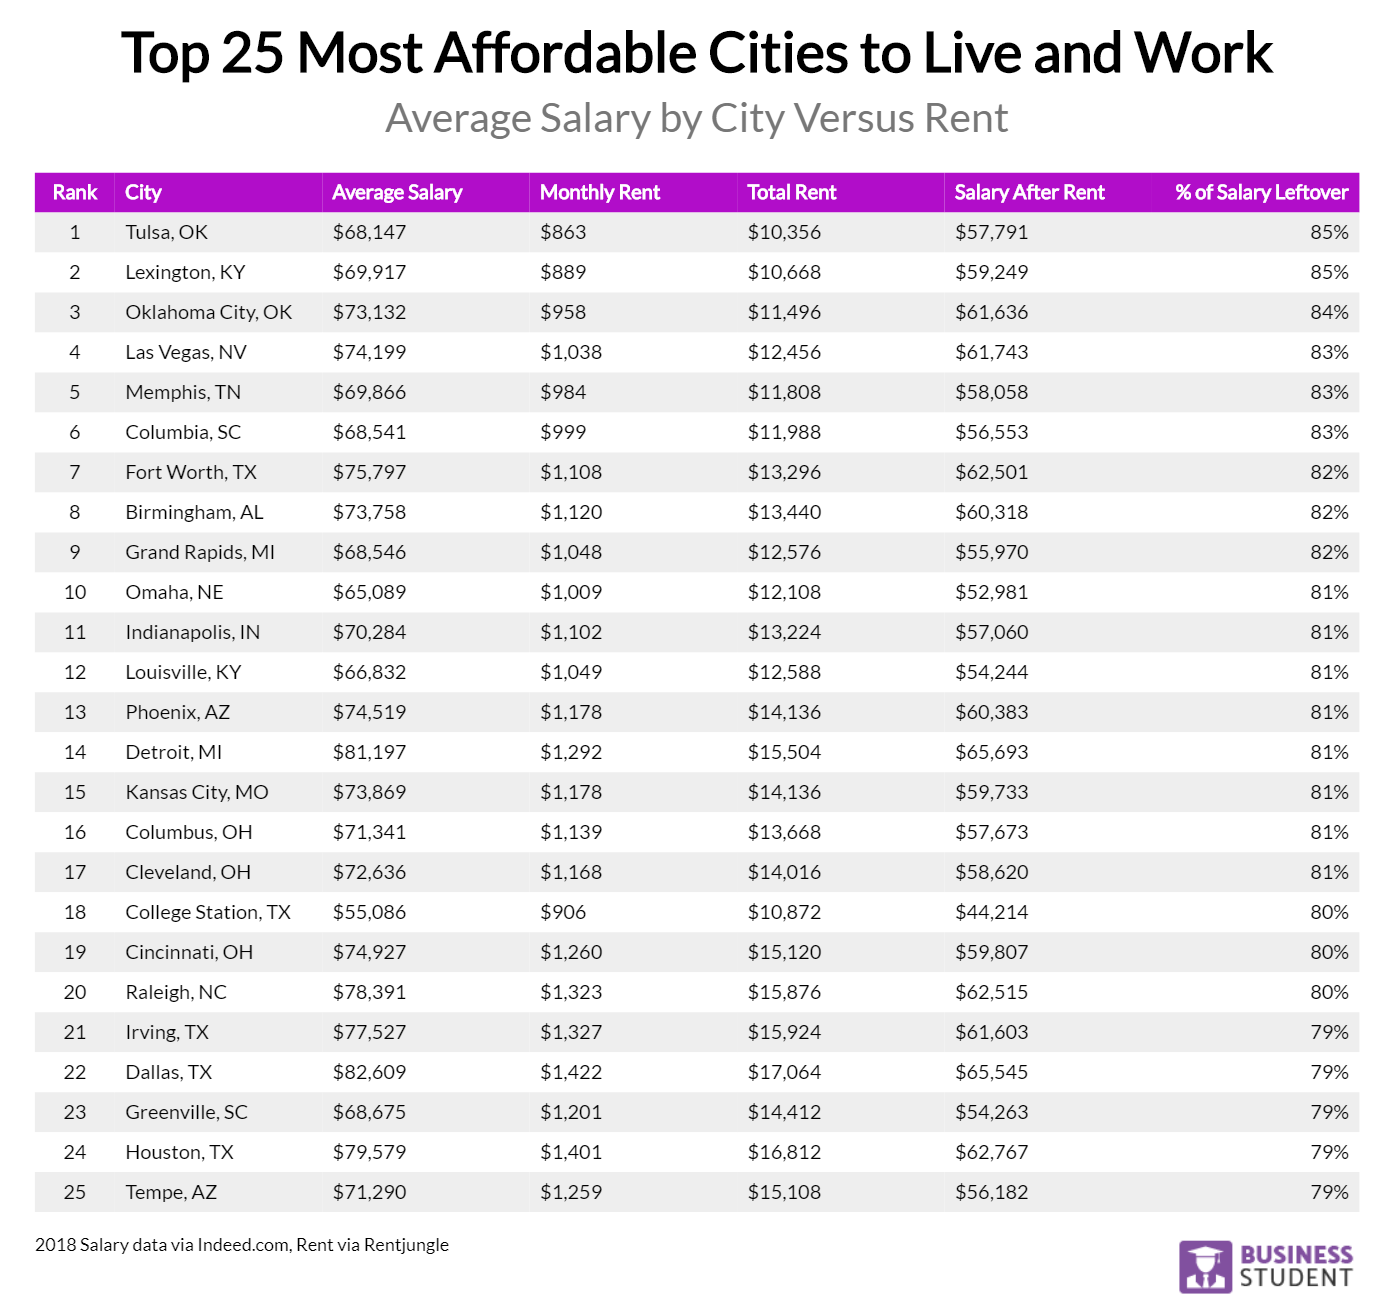 Top 25 Most Affordable Cities to Live and Work in 2019